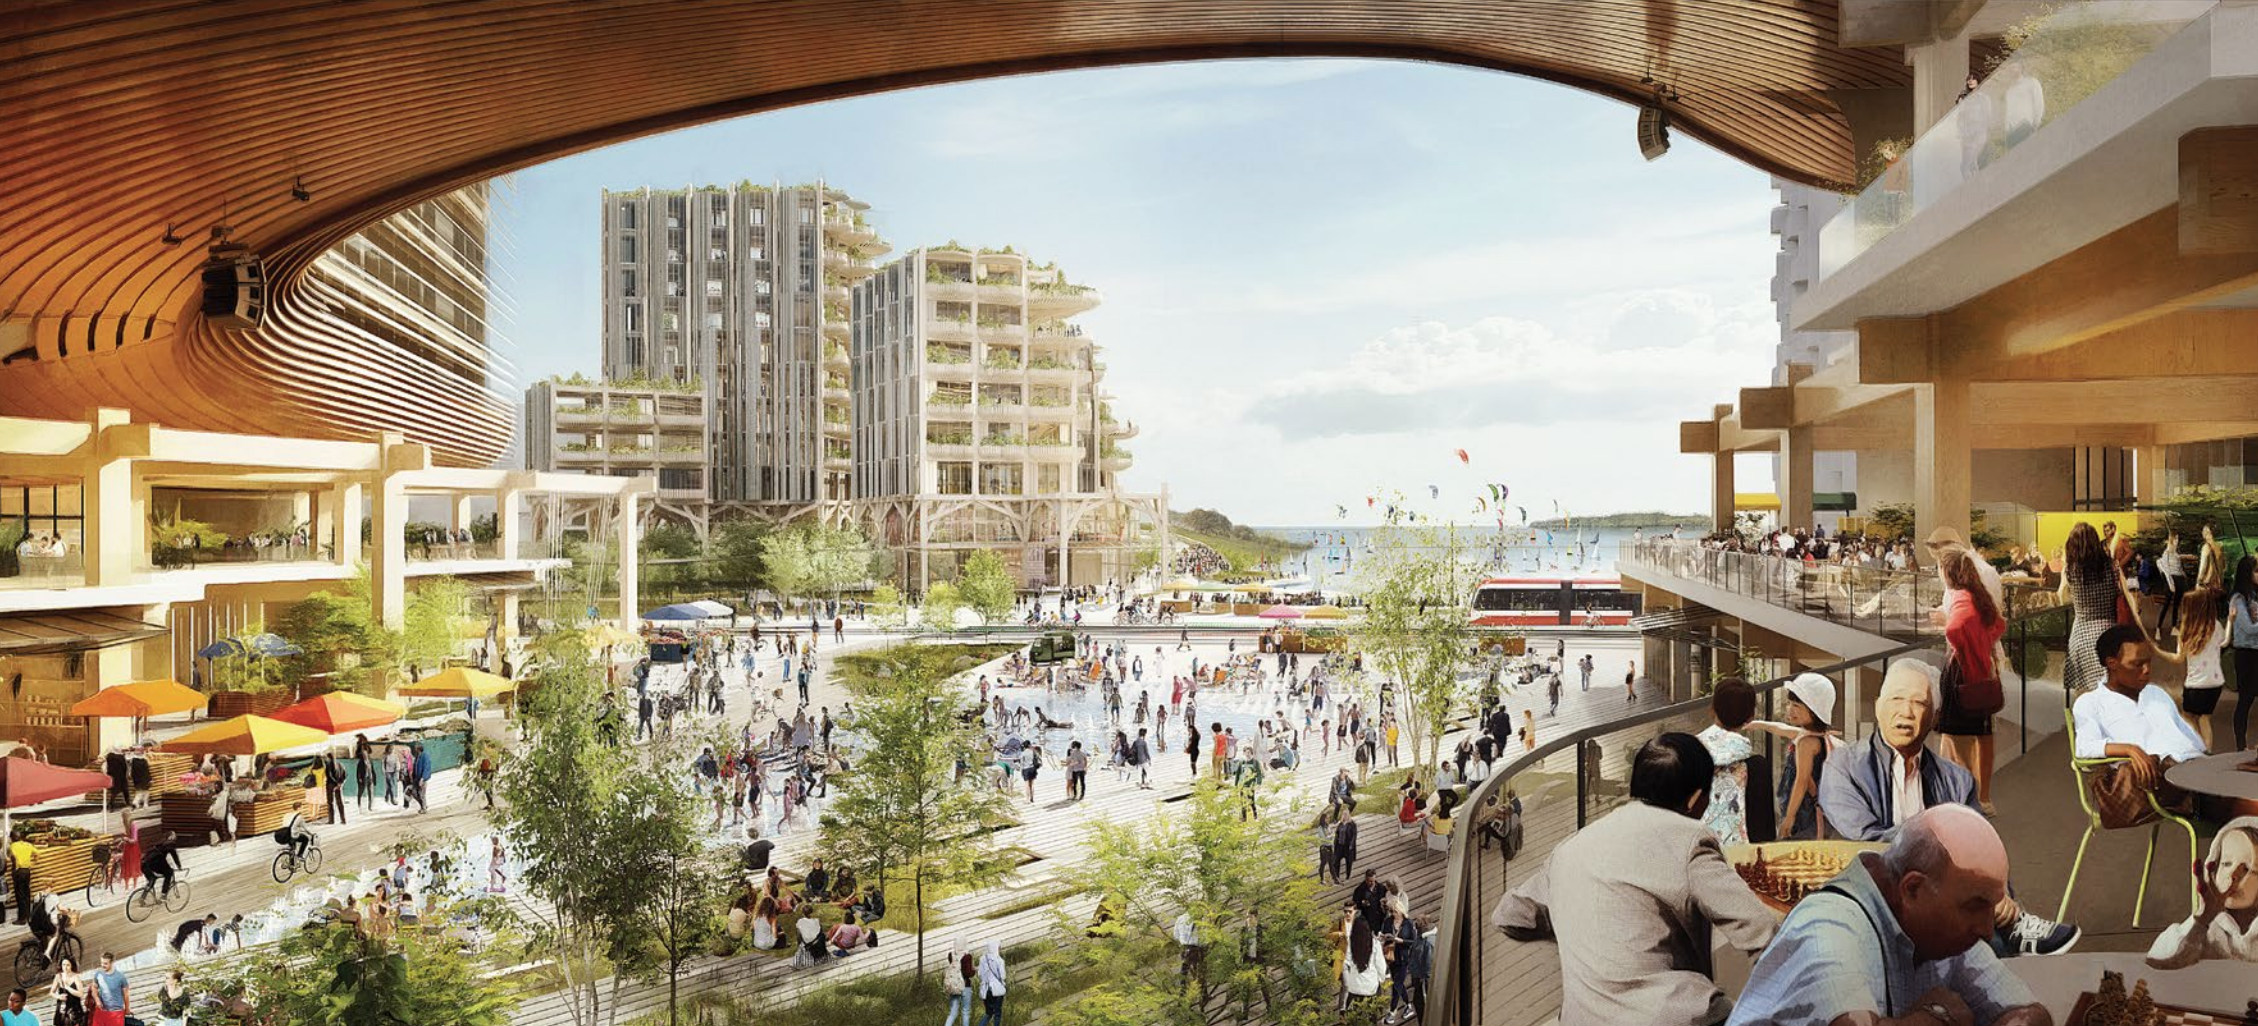 Toronto Smart City Quayside to be all mass timber